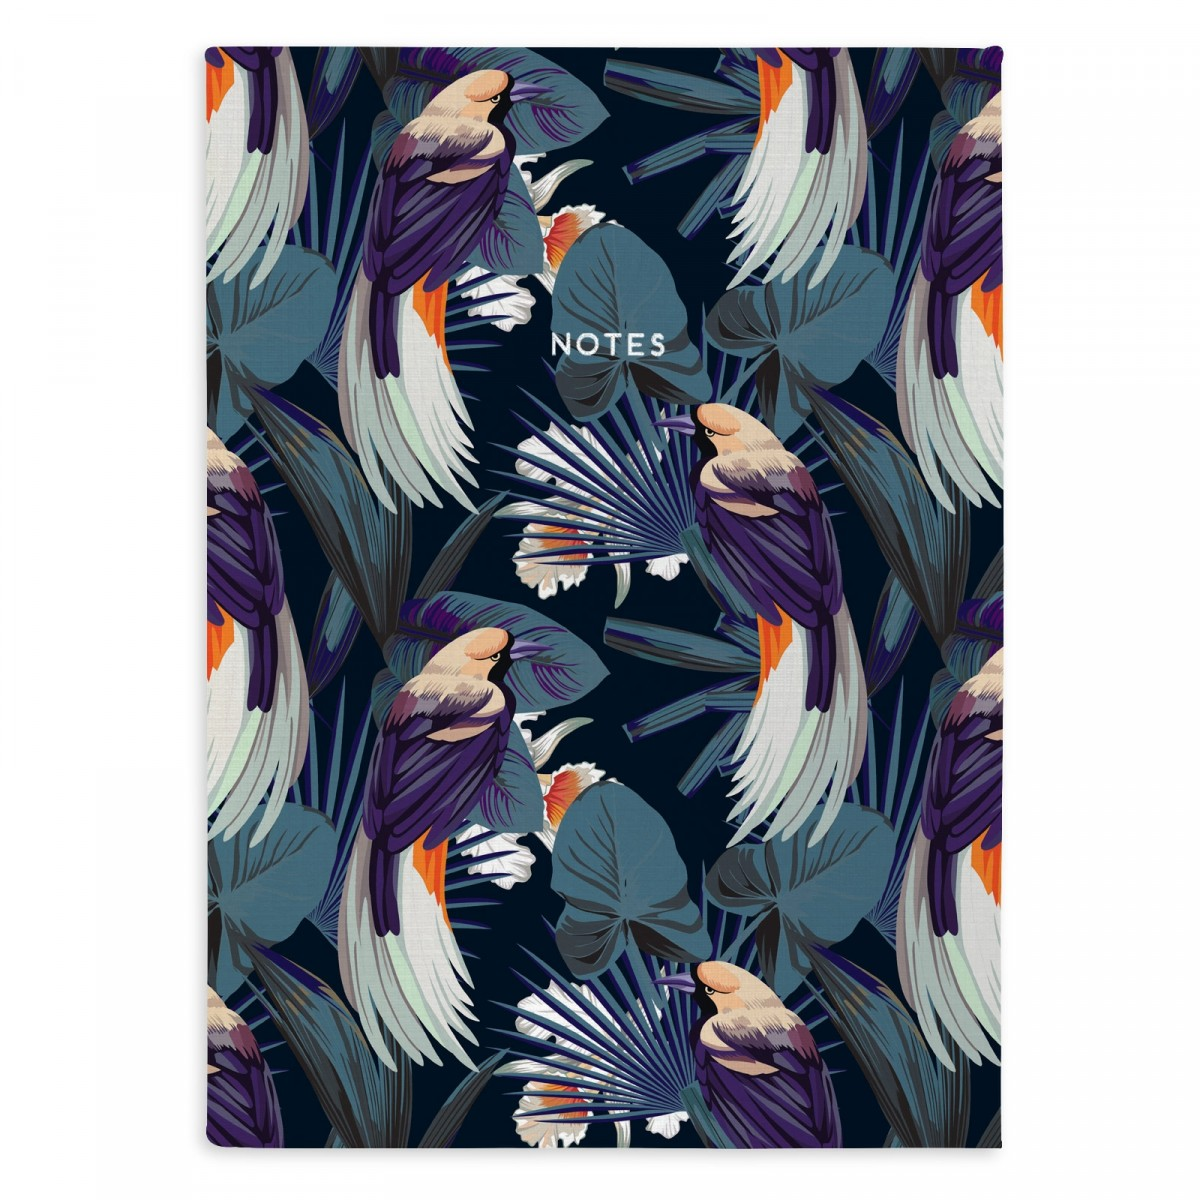 uous-nbl-004-a5_birds_of_paradise_cover.jpg